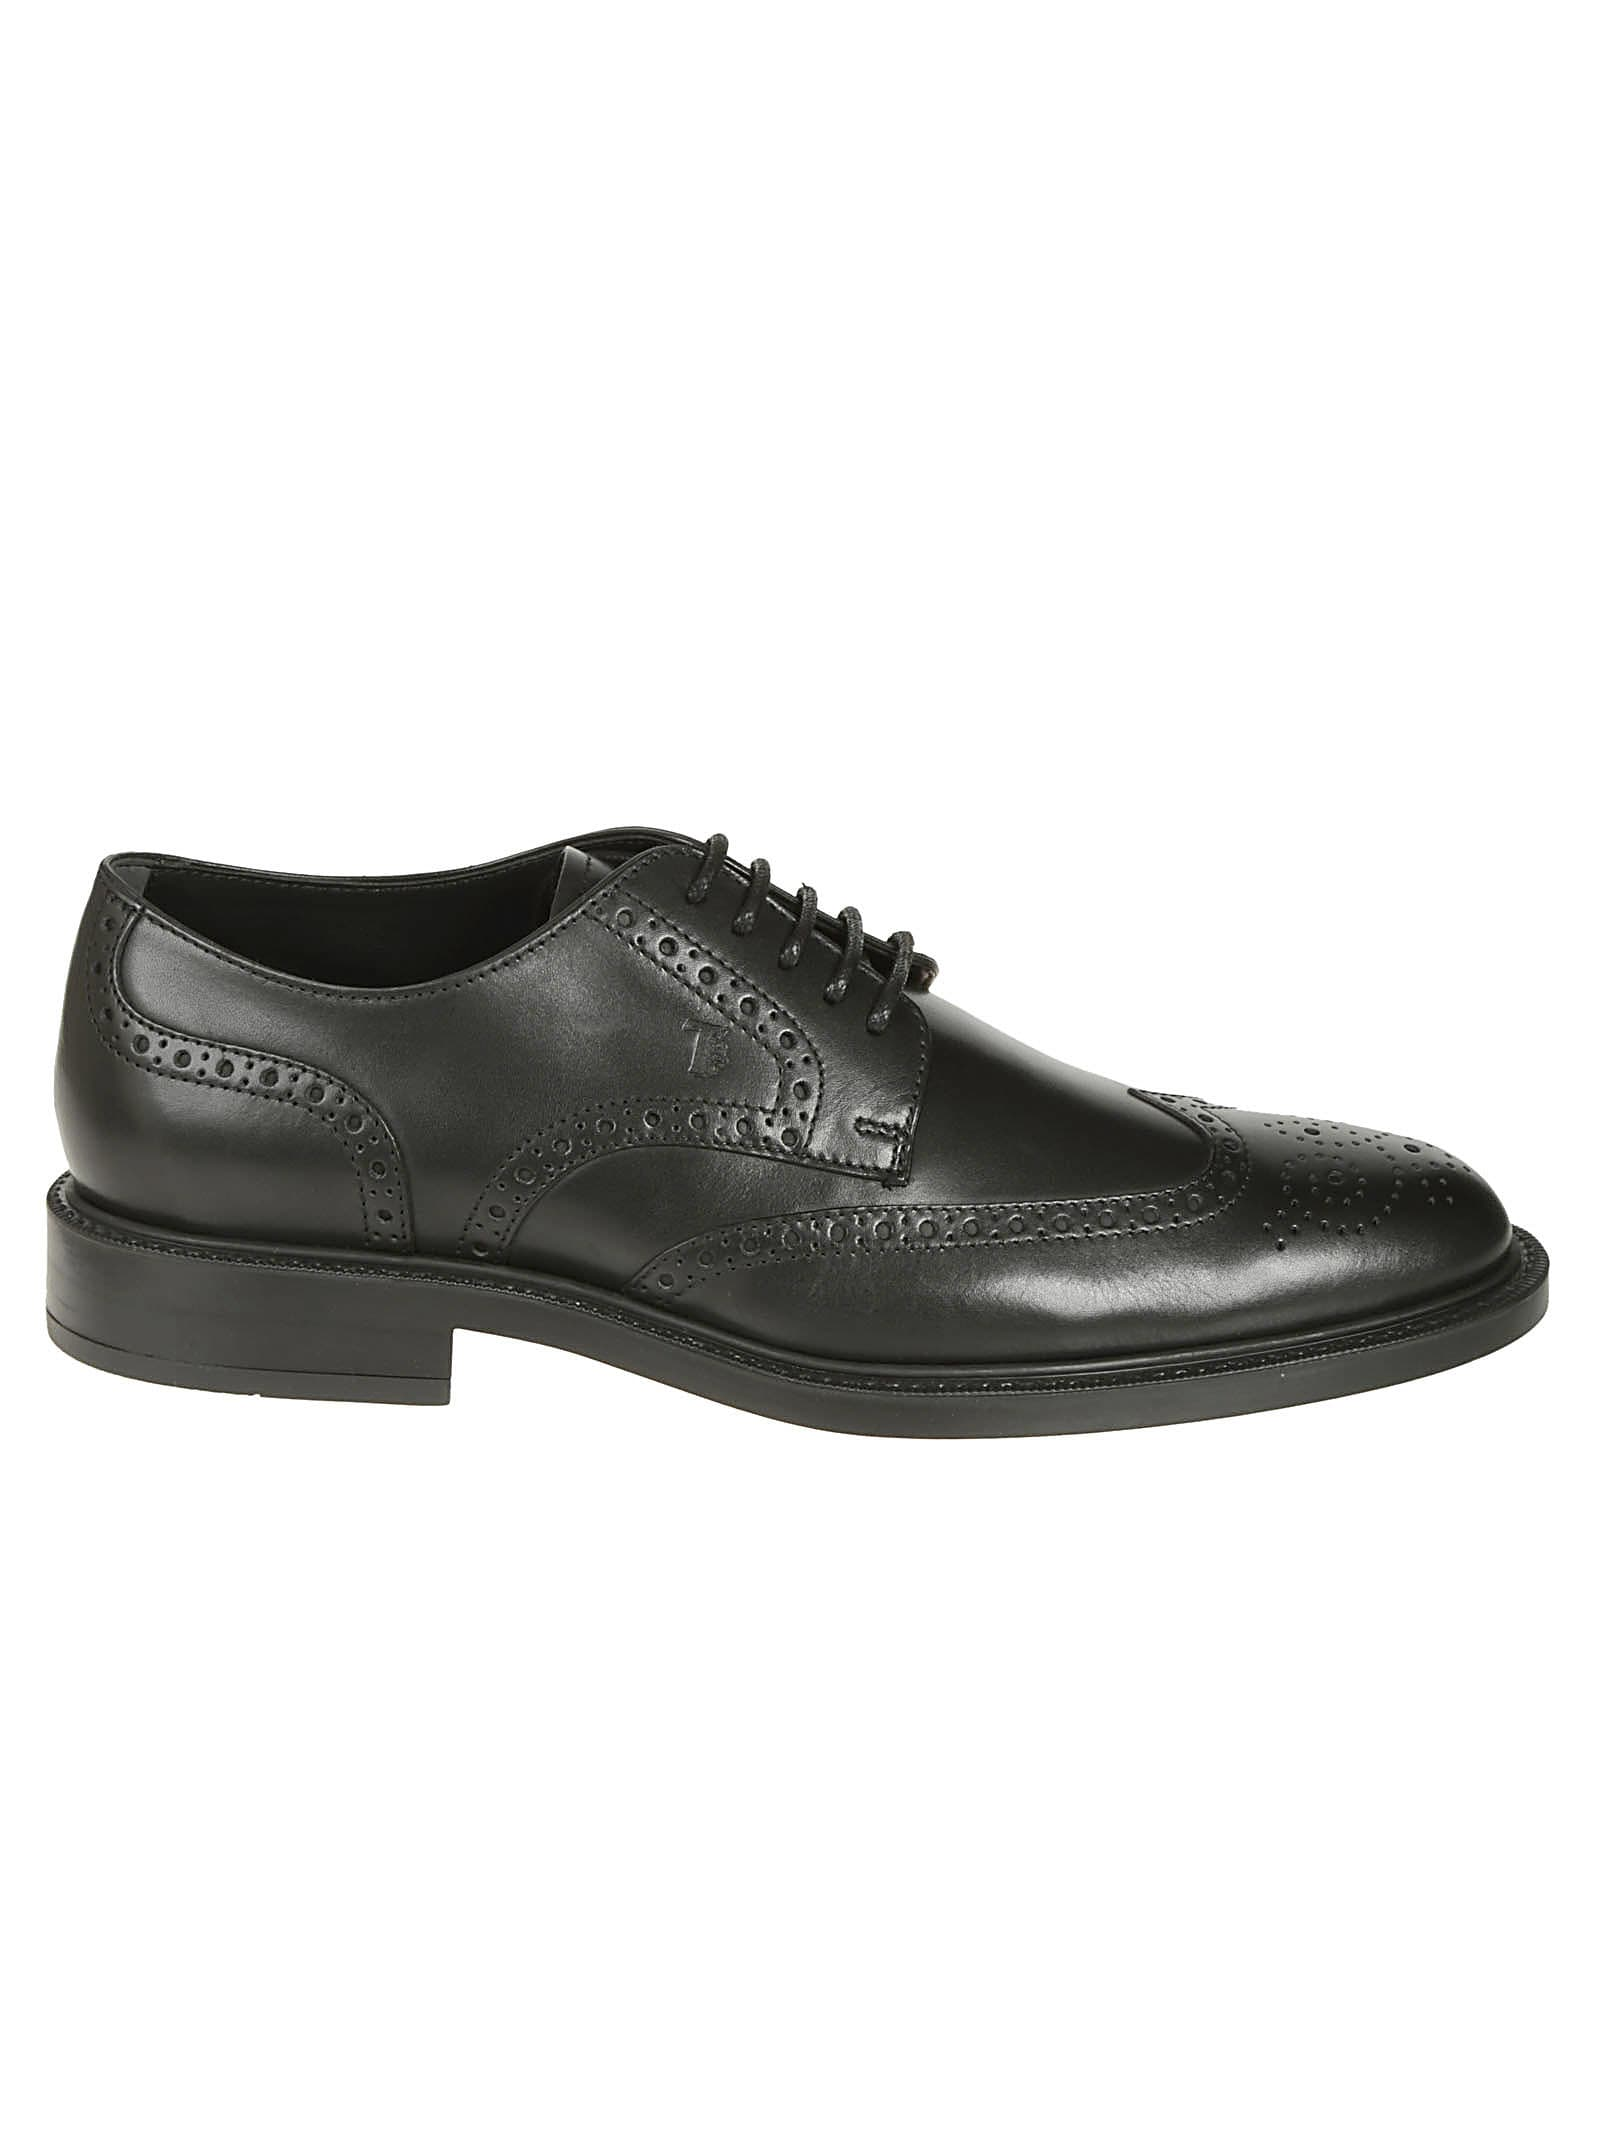 Tods Embossed Logo Oxford Shoes